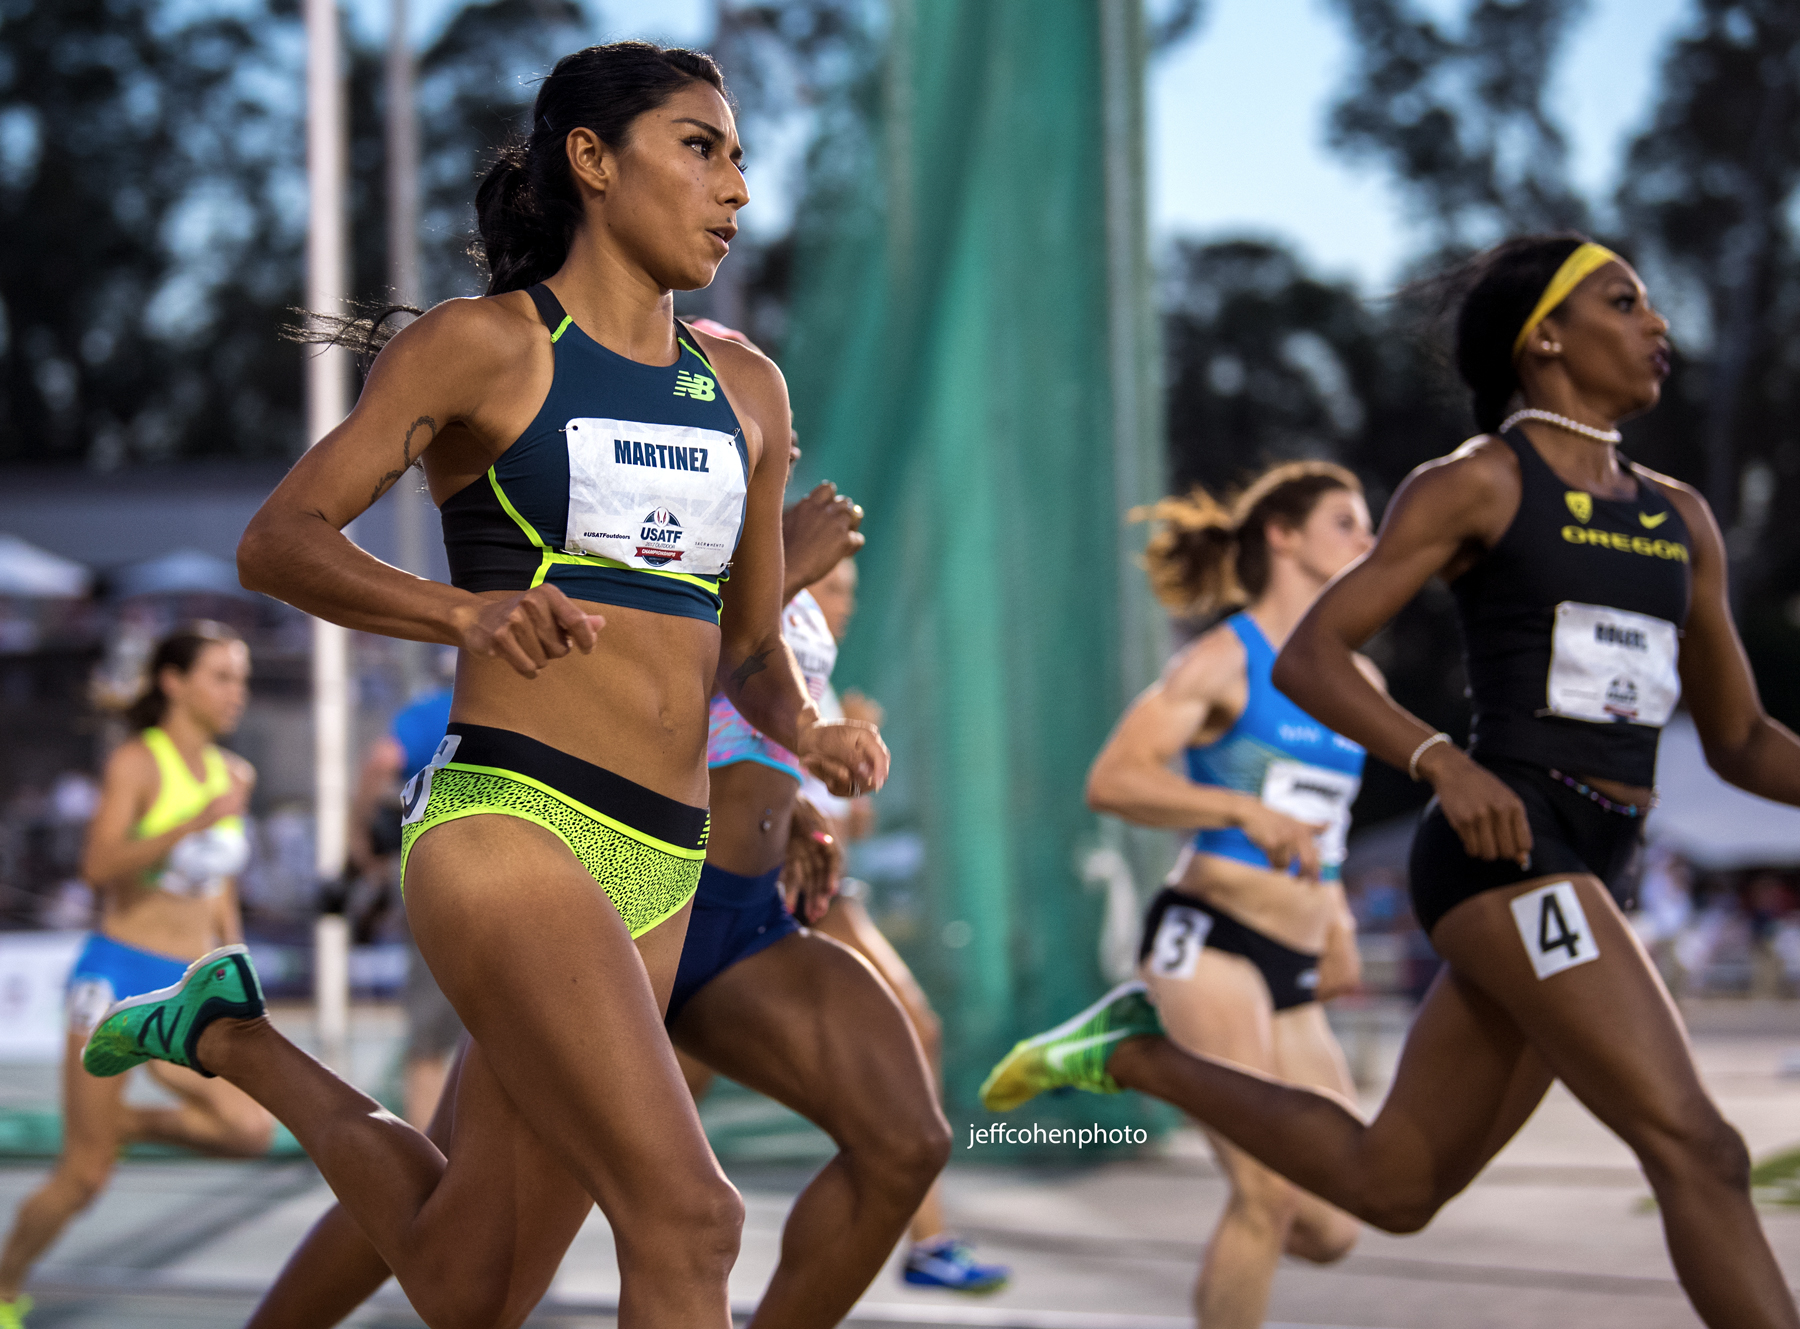 2017-usatf-outdoor-champs-day-2-martinez-800mw--jeff-cohen-photo--3604web.jpg